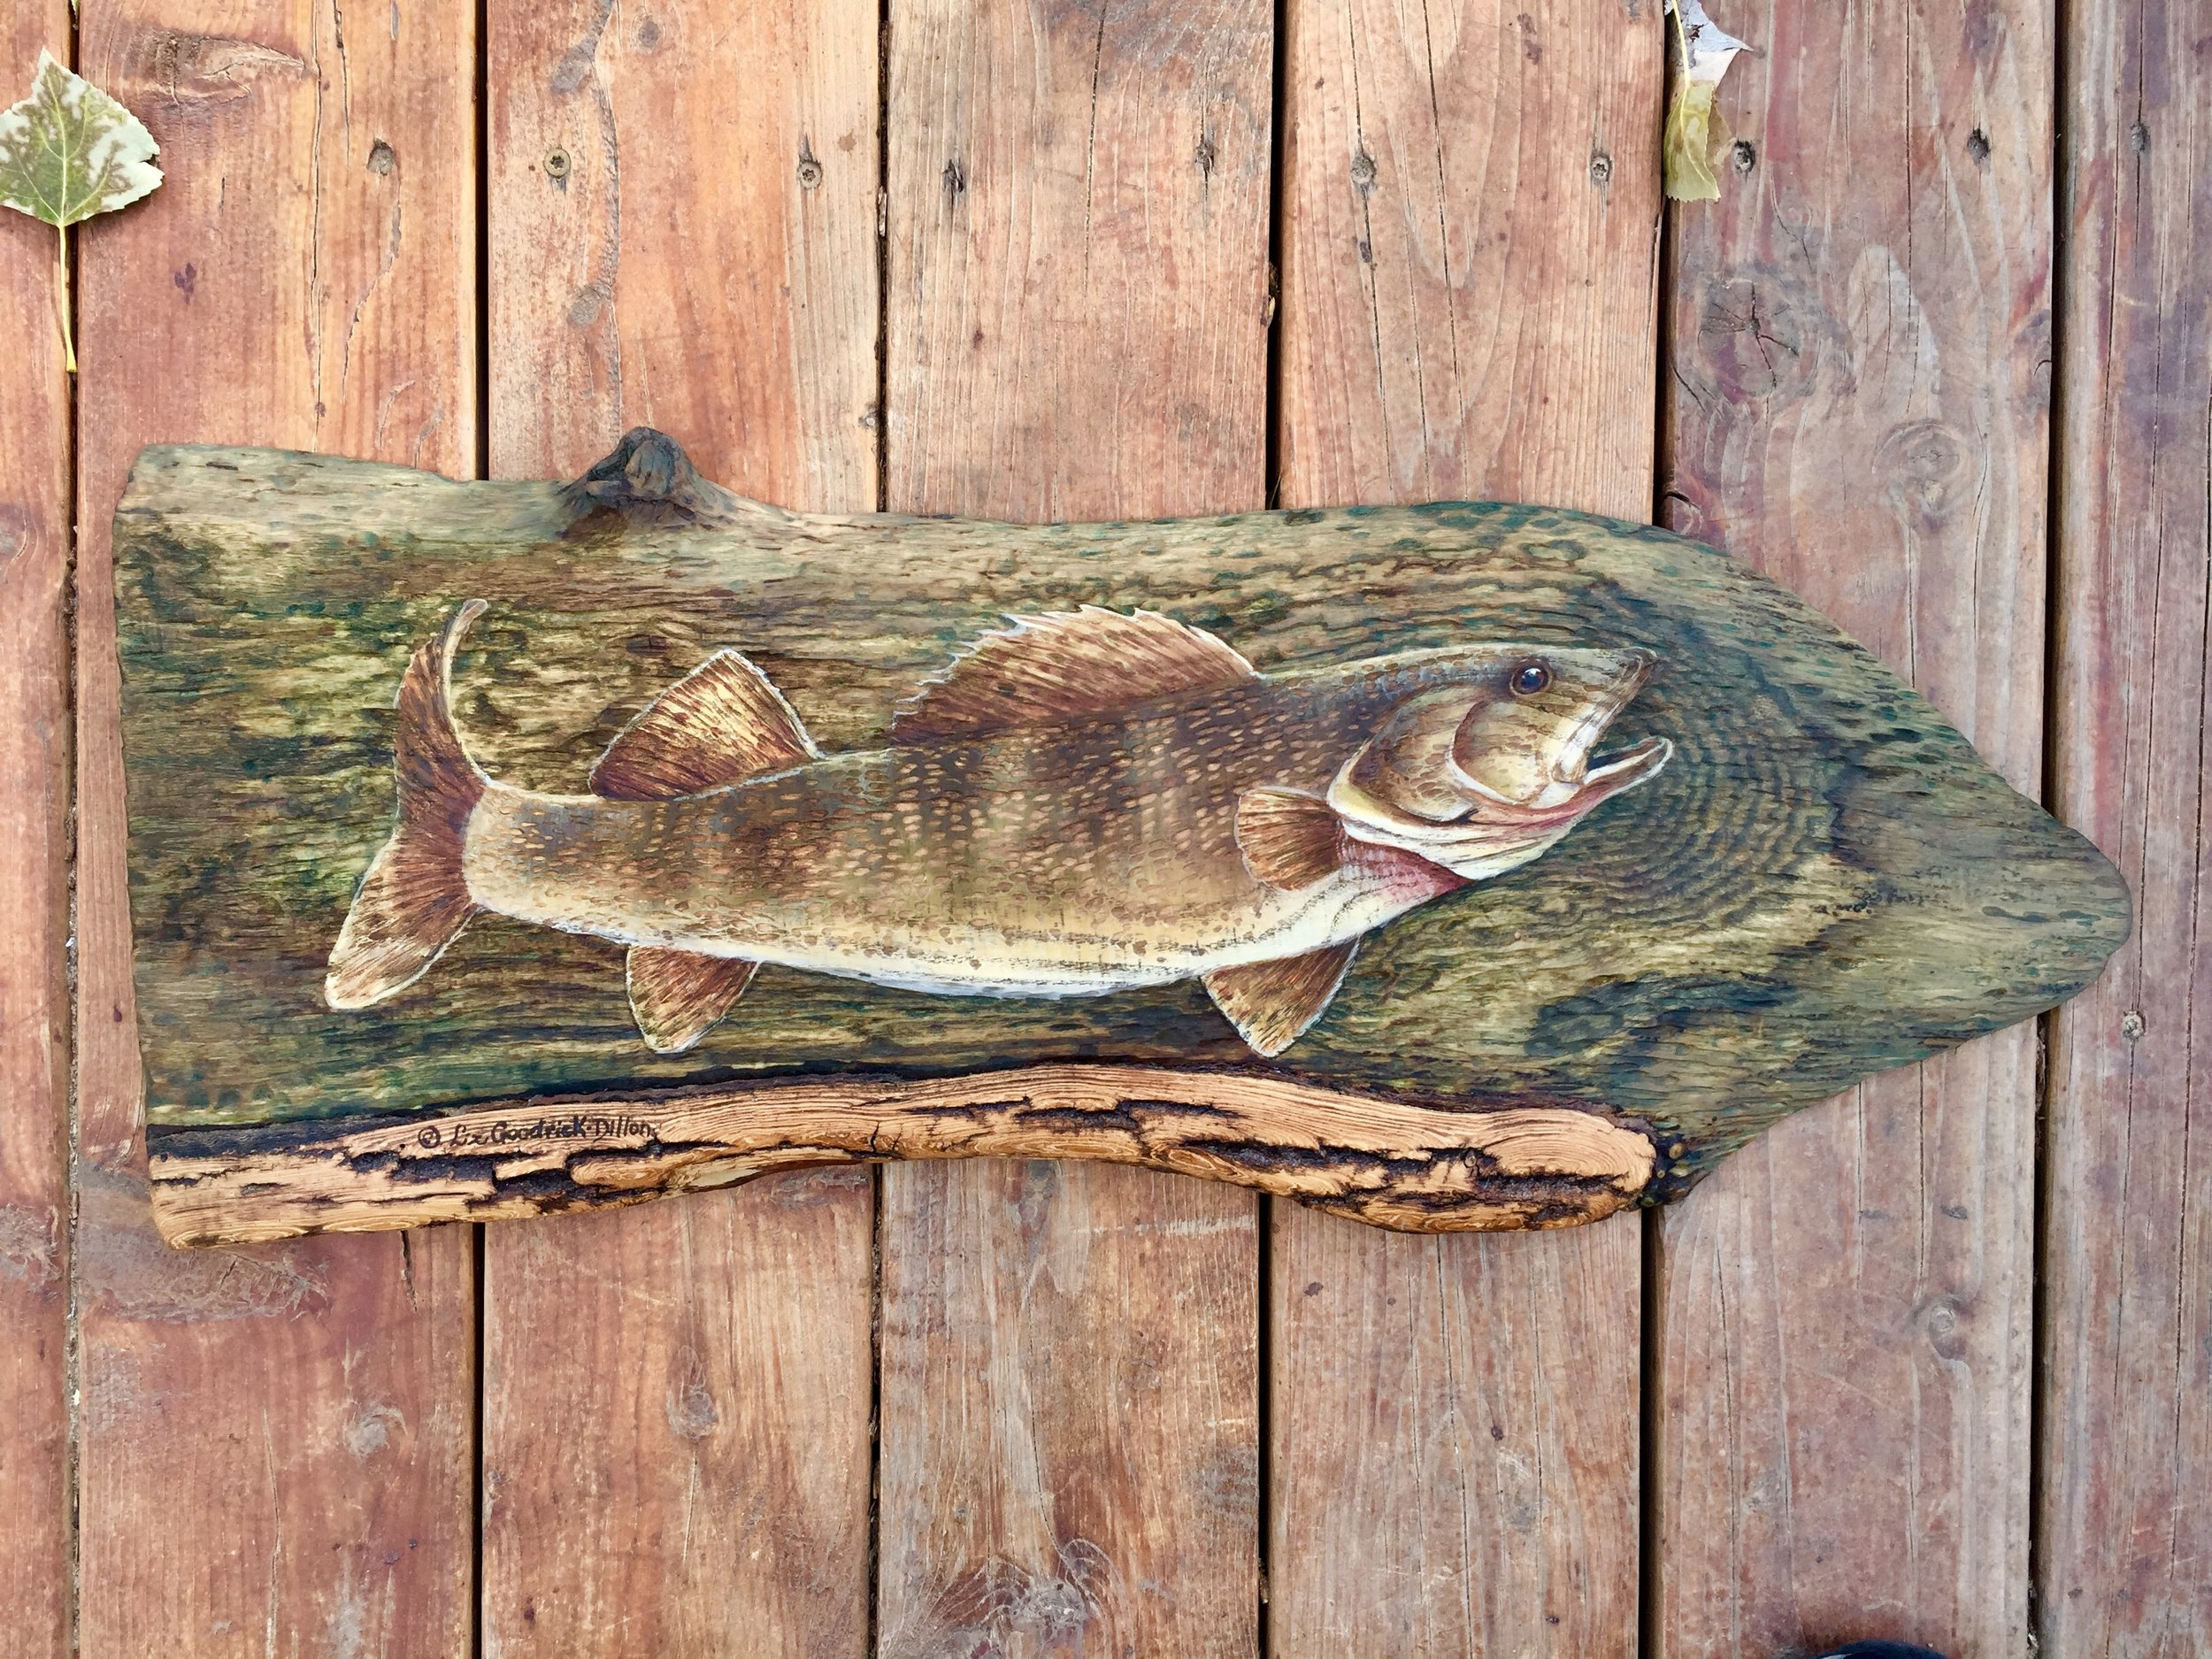 Walleye on wood - by ©Liz Goodrick-Dillon